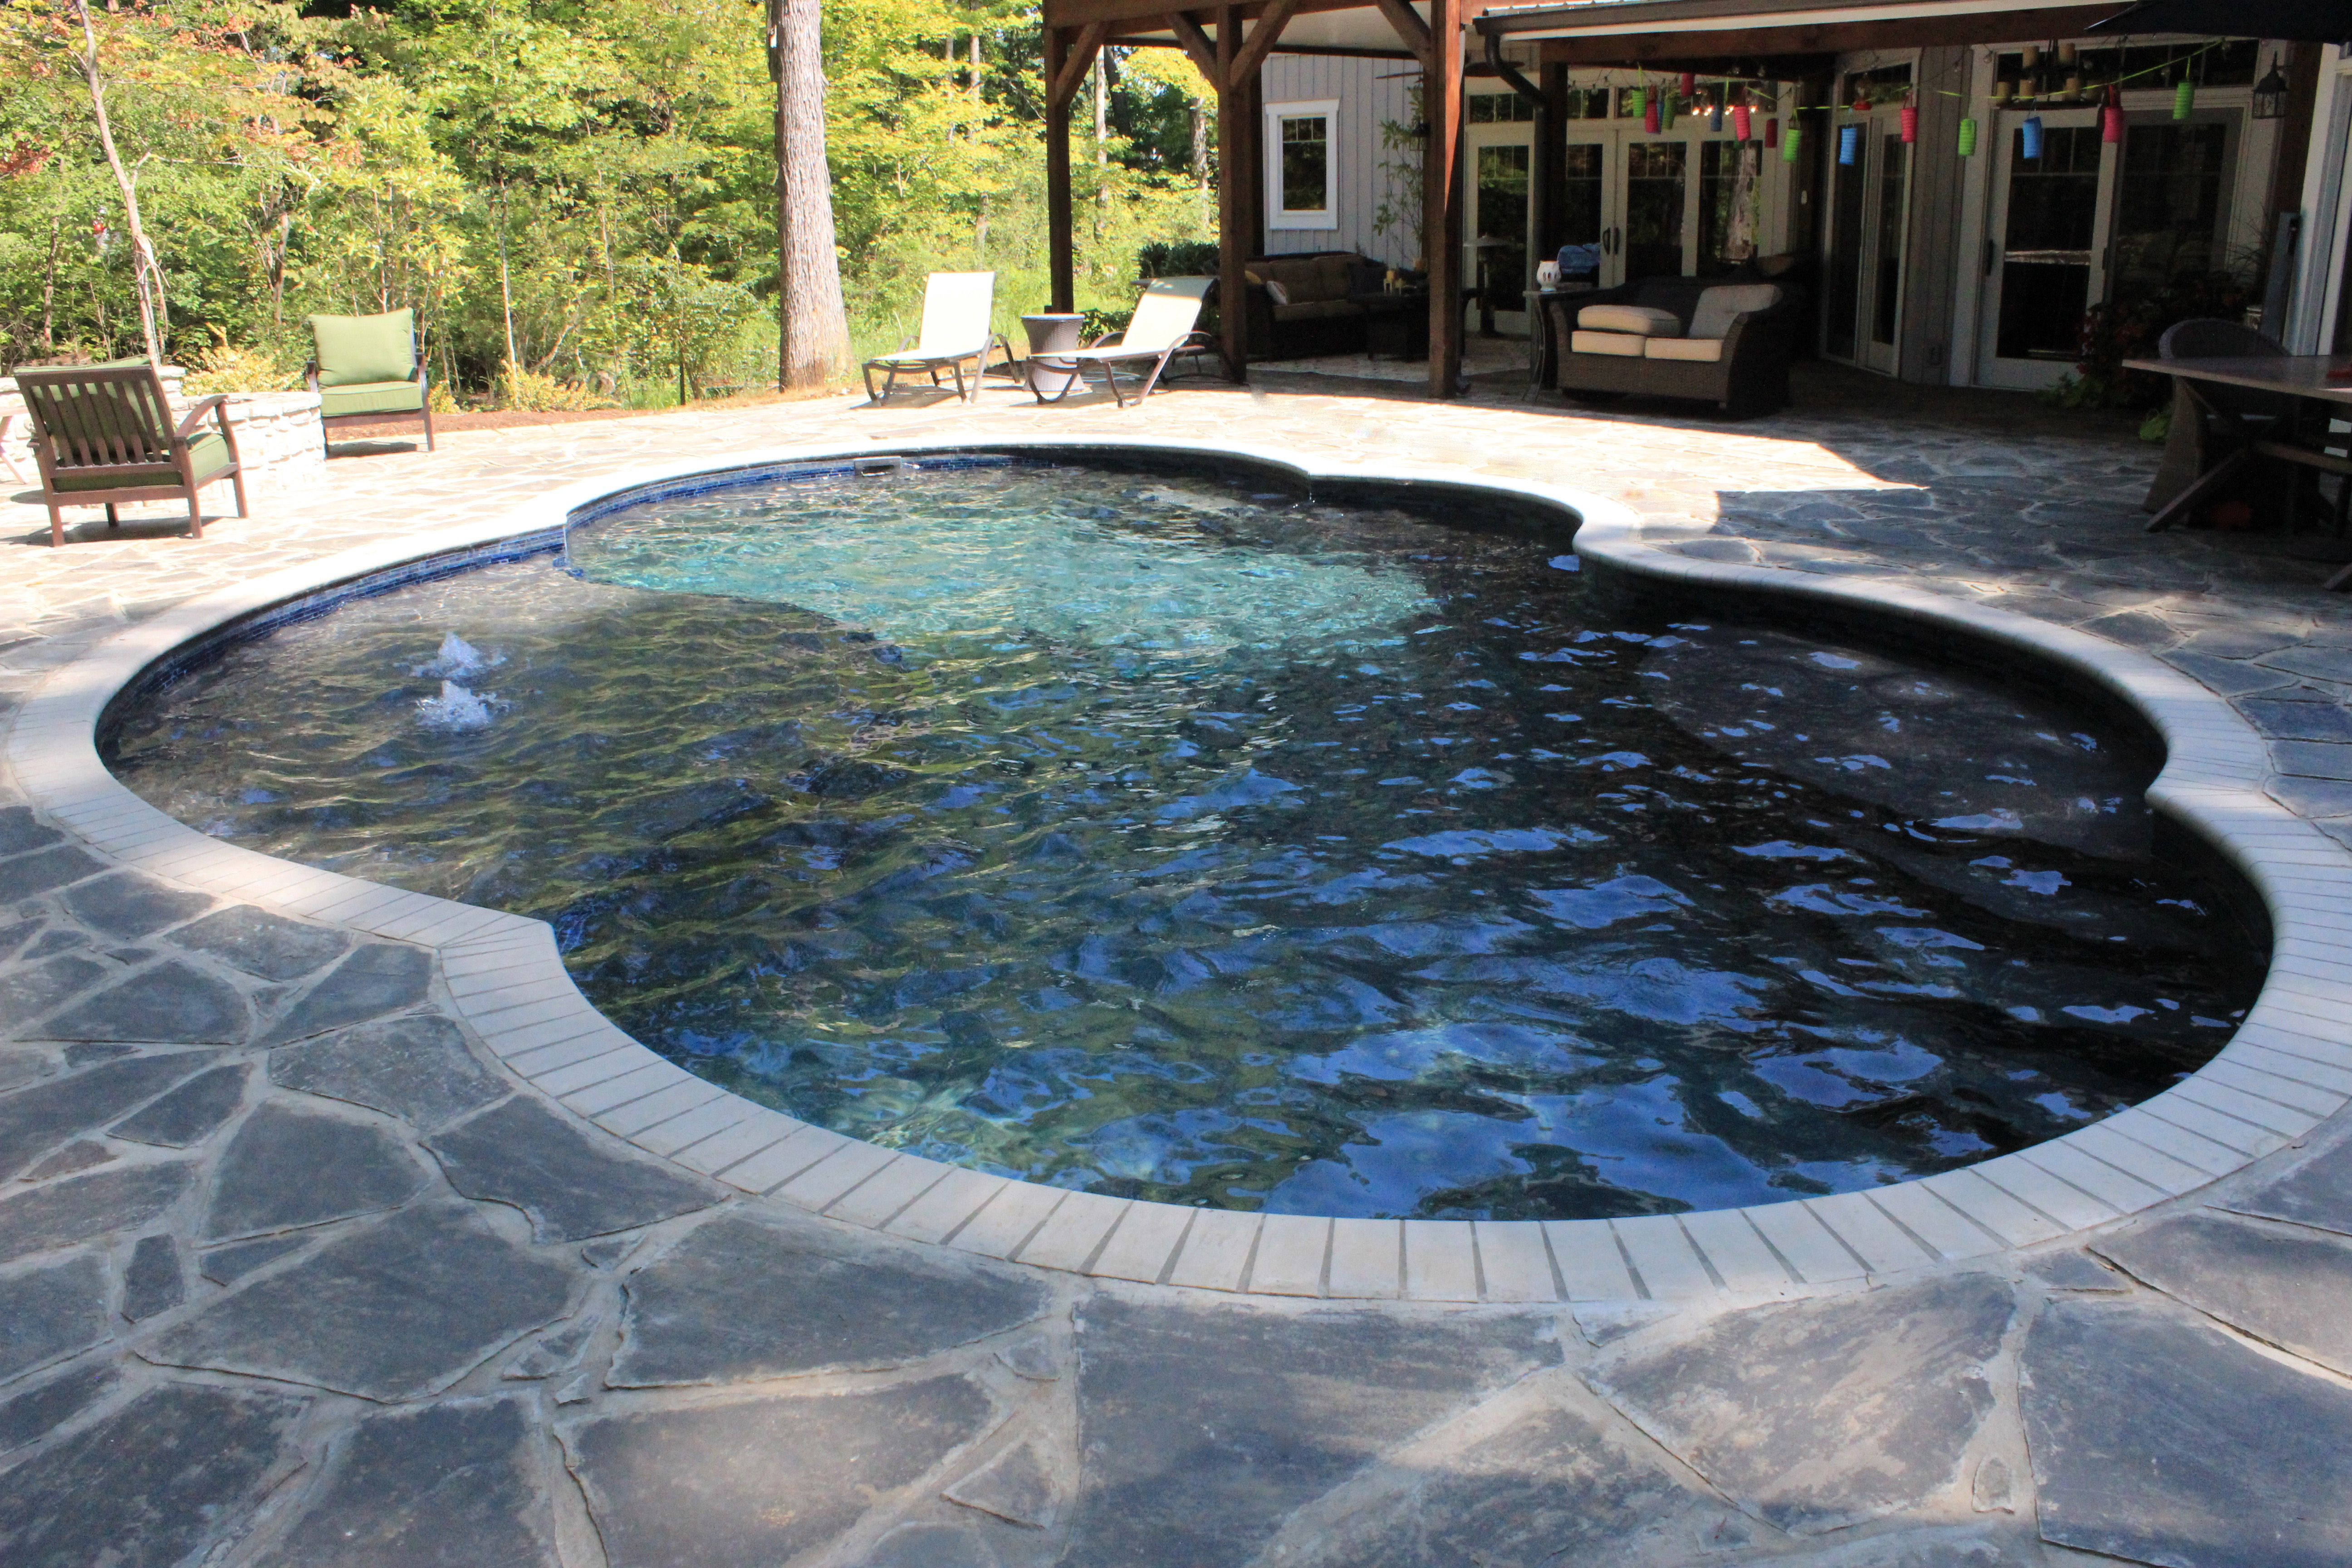 Dark green color, fiberglass pool, freeform shape with tanning